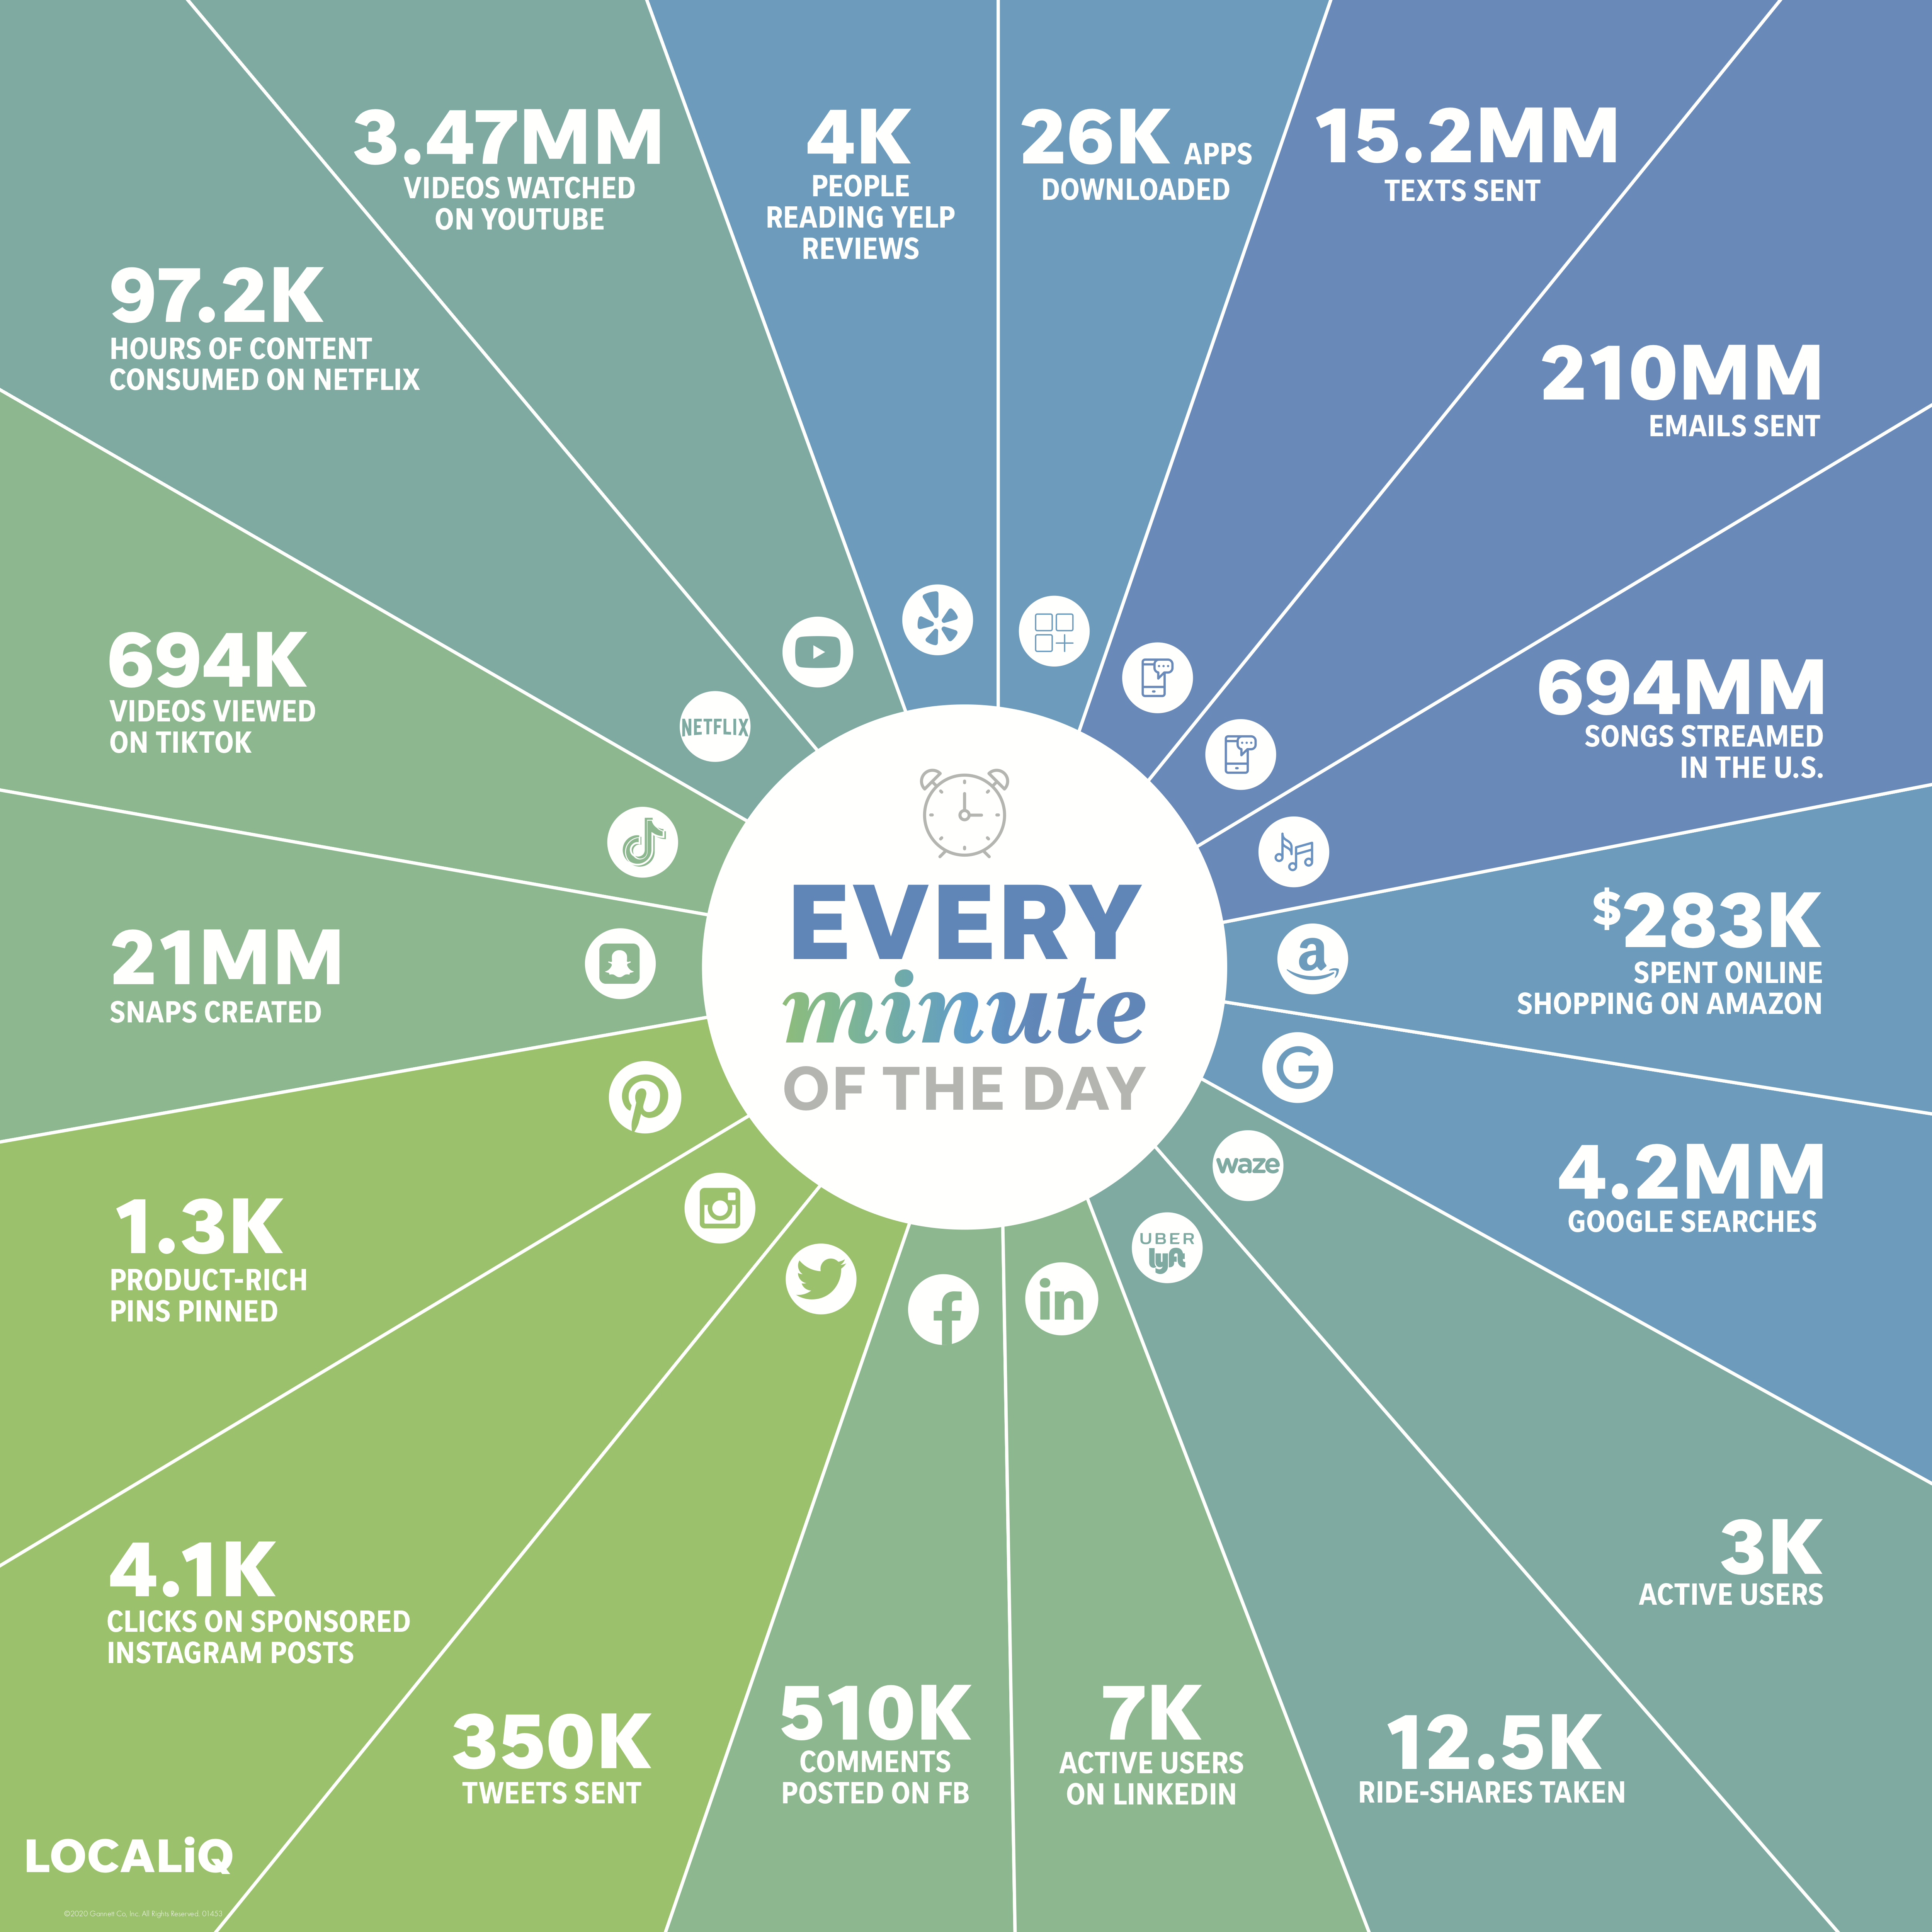 infographic highlighting what happens in a minute on the internet